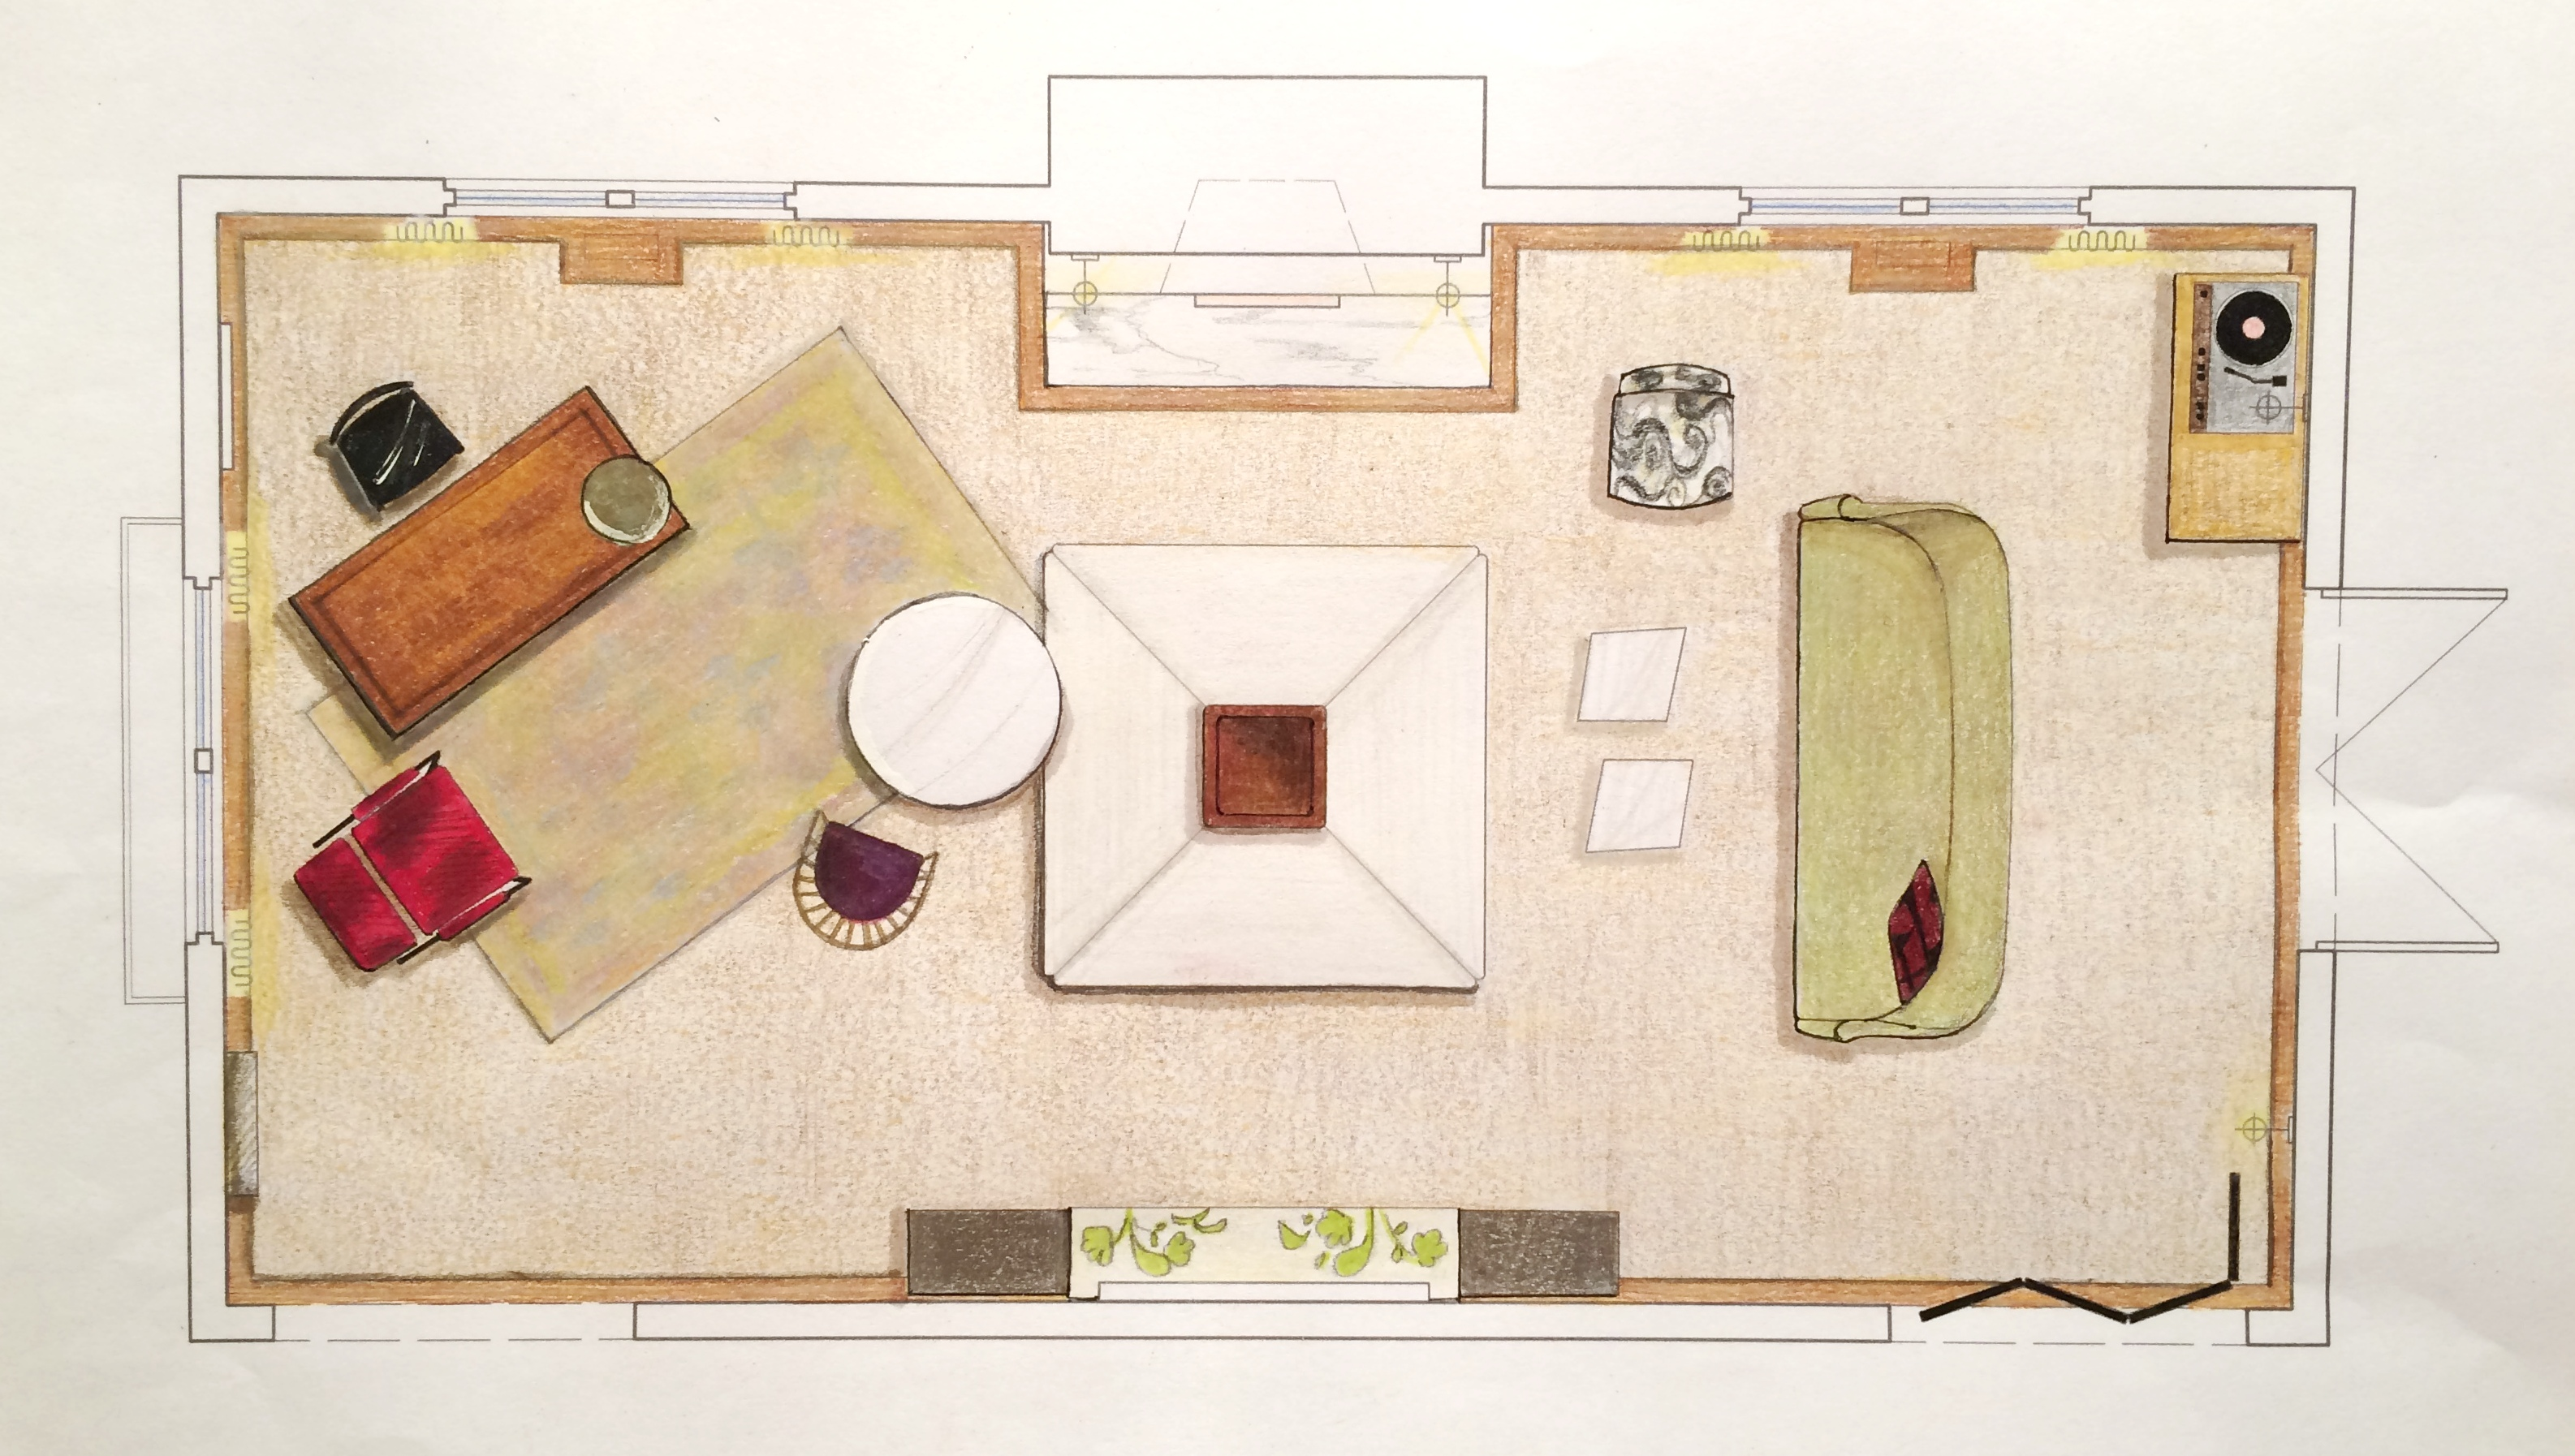 dc design house 2016 floor plan huntley & co.